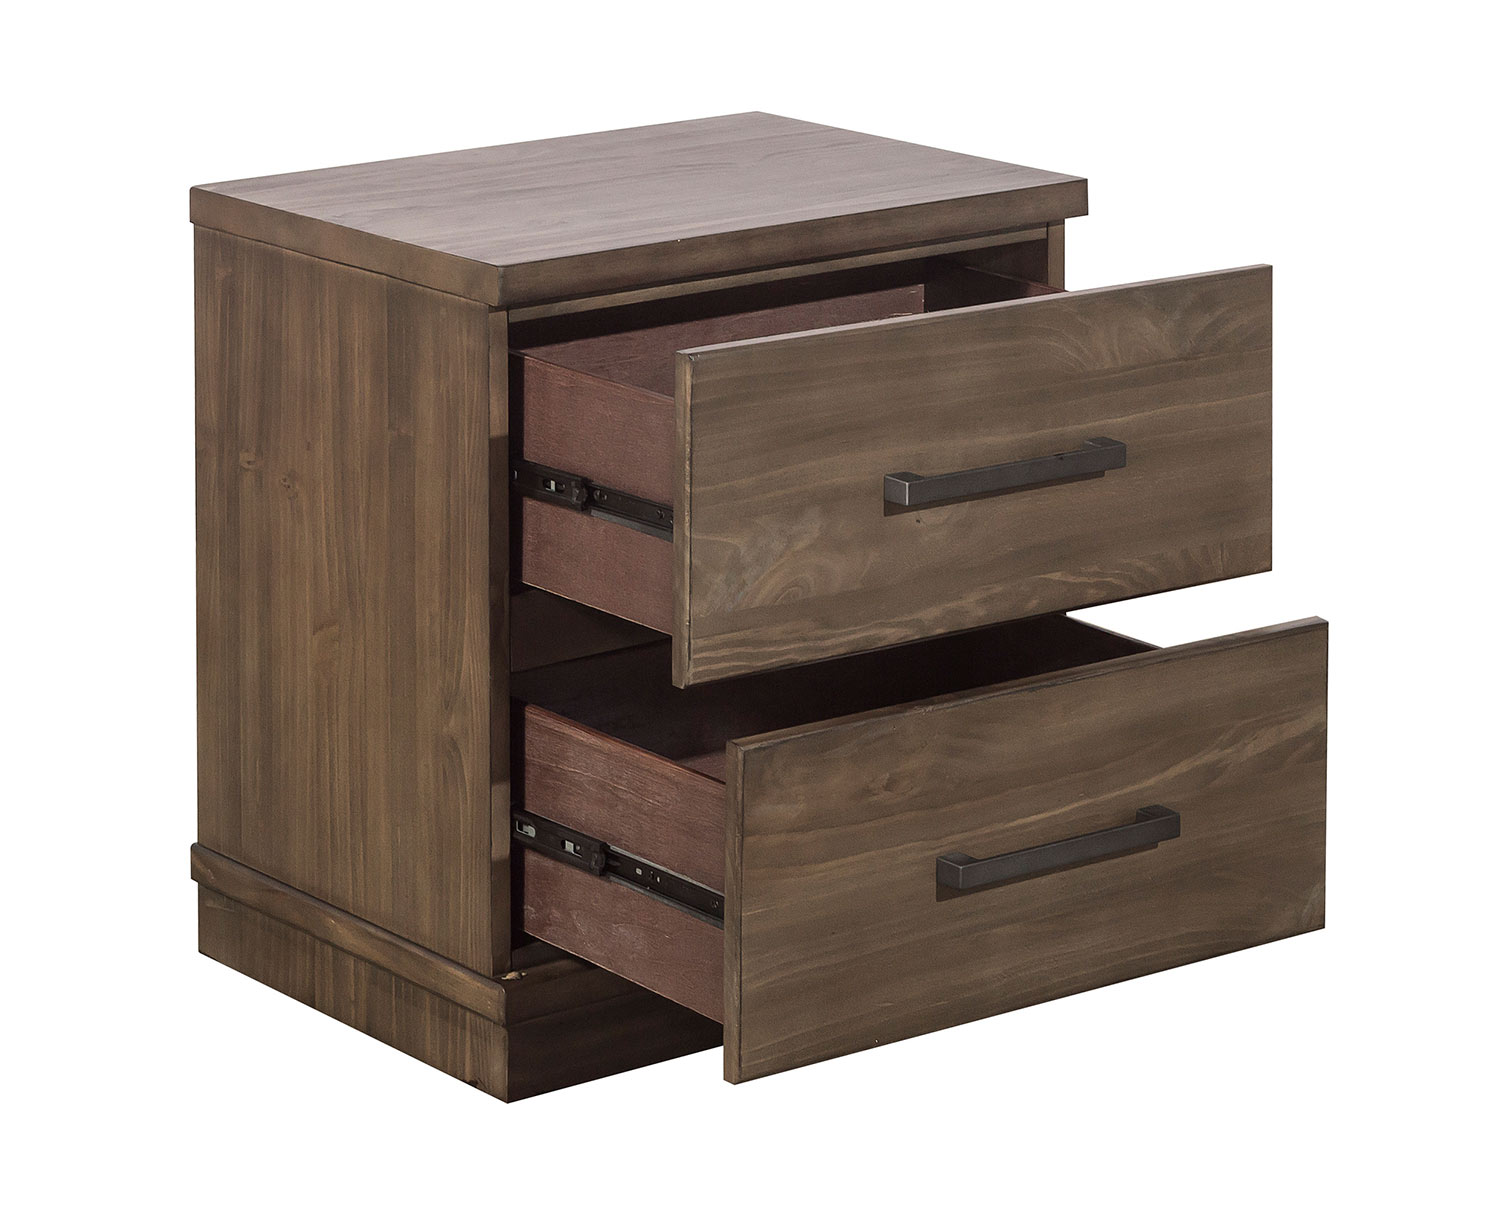 Homelegance Bracco Night Stand - Brown